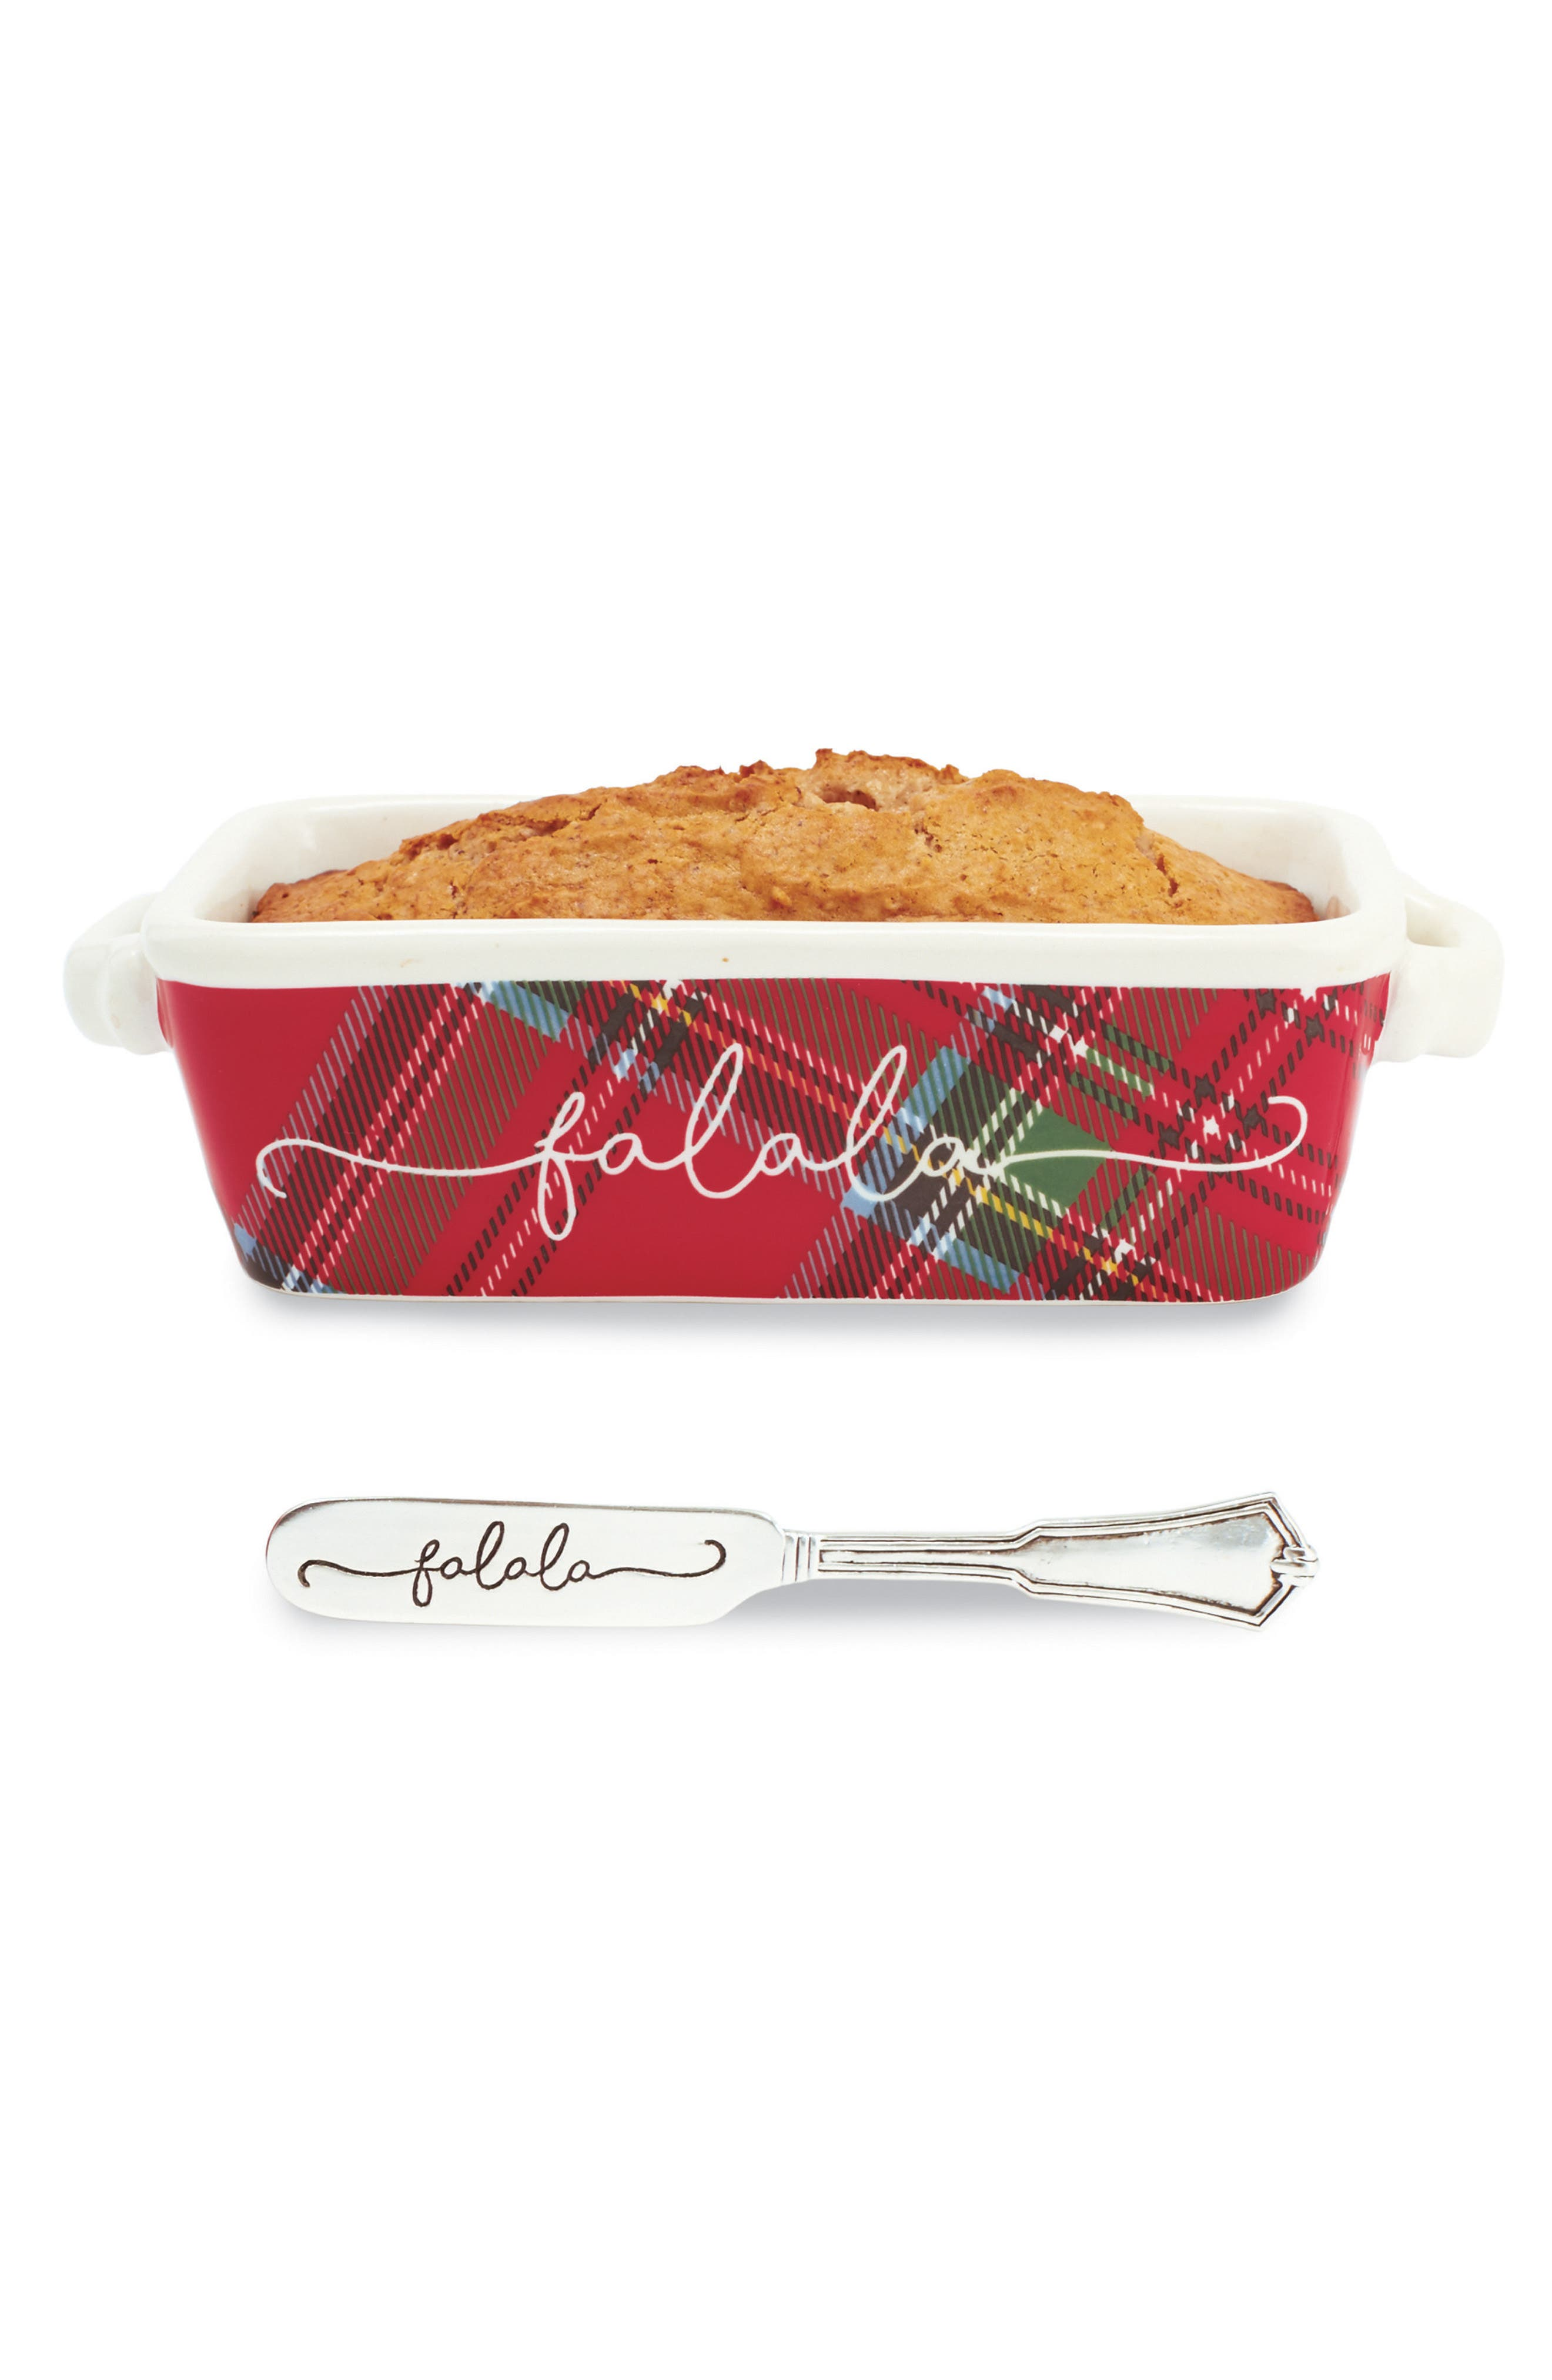 Alternate Image 1 Selected - Mud Pie Fa La La Tartan Ceramic Mini Loaf Pan & Spreader